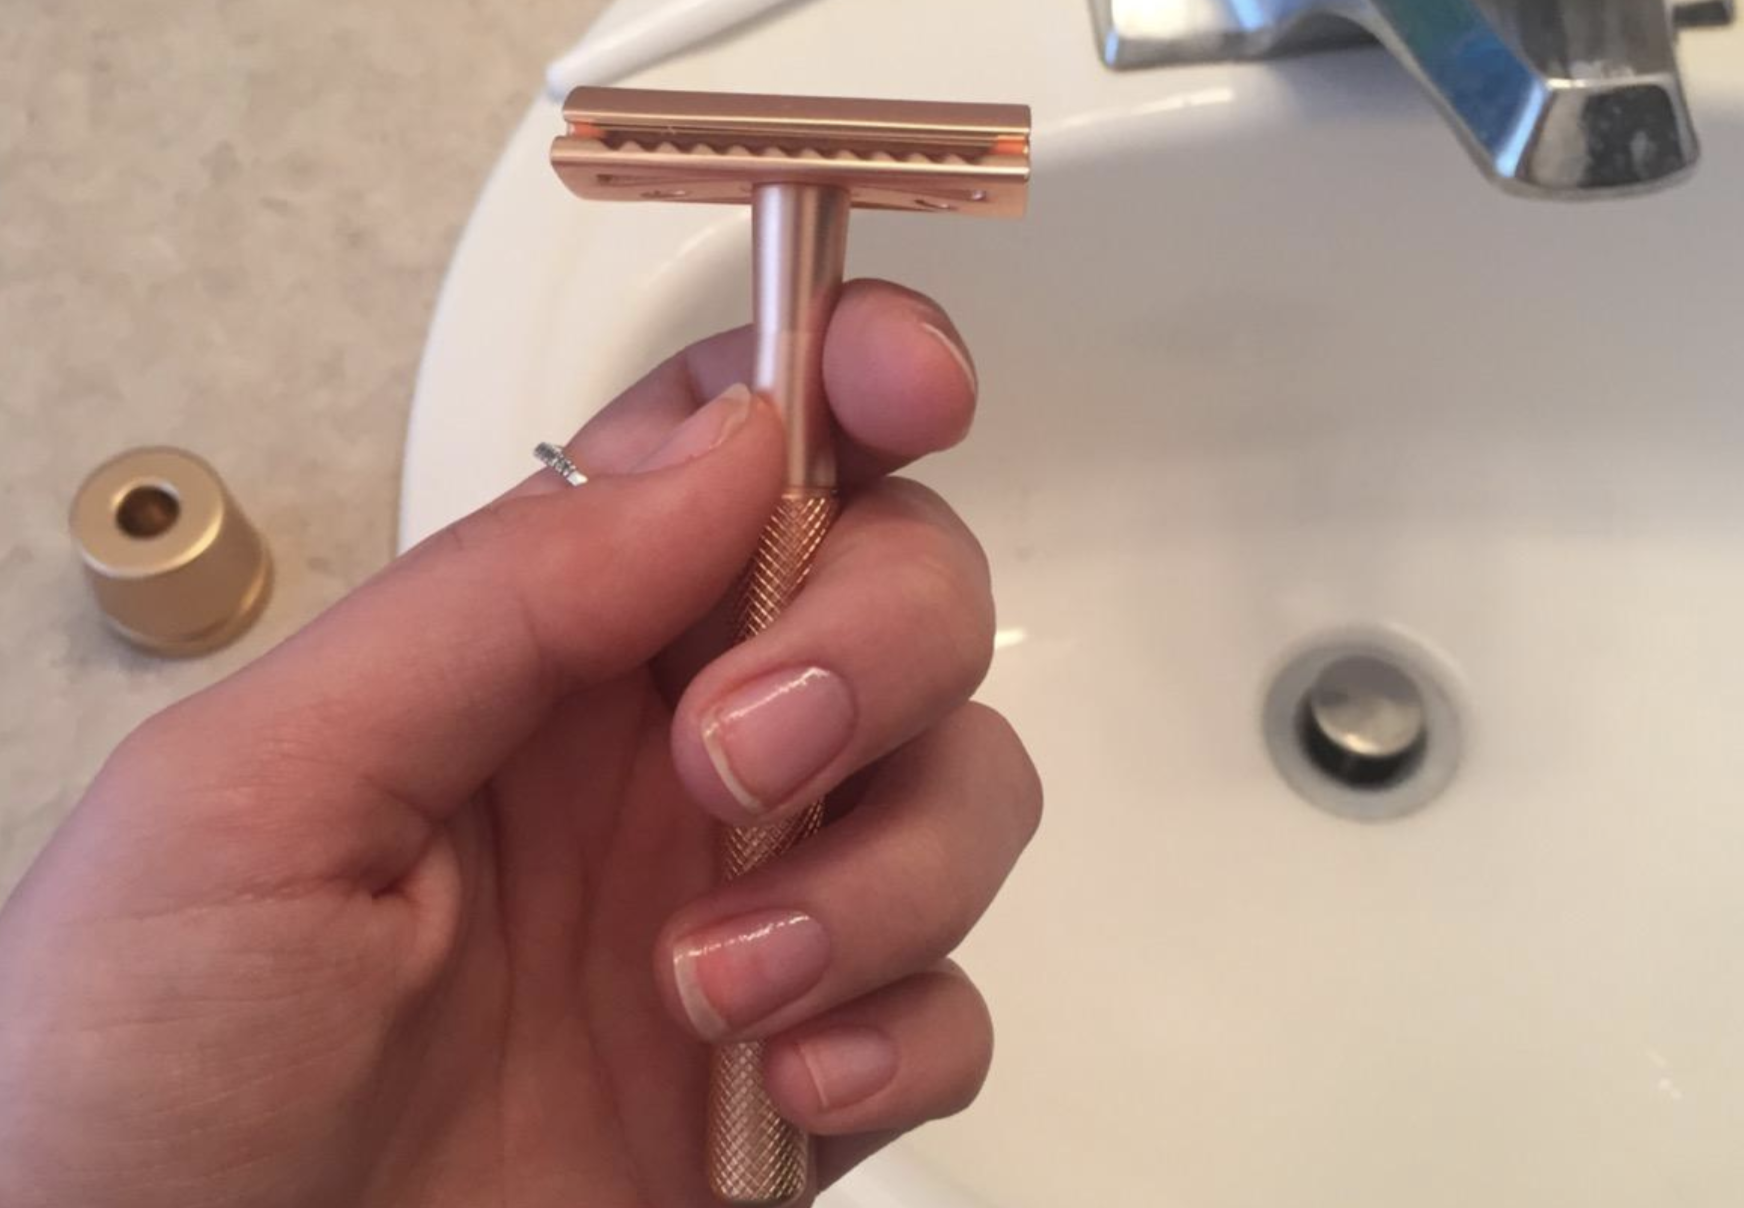 A reviewer holding up the razor